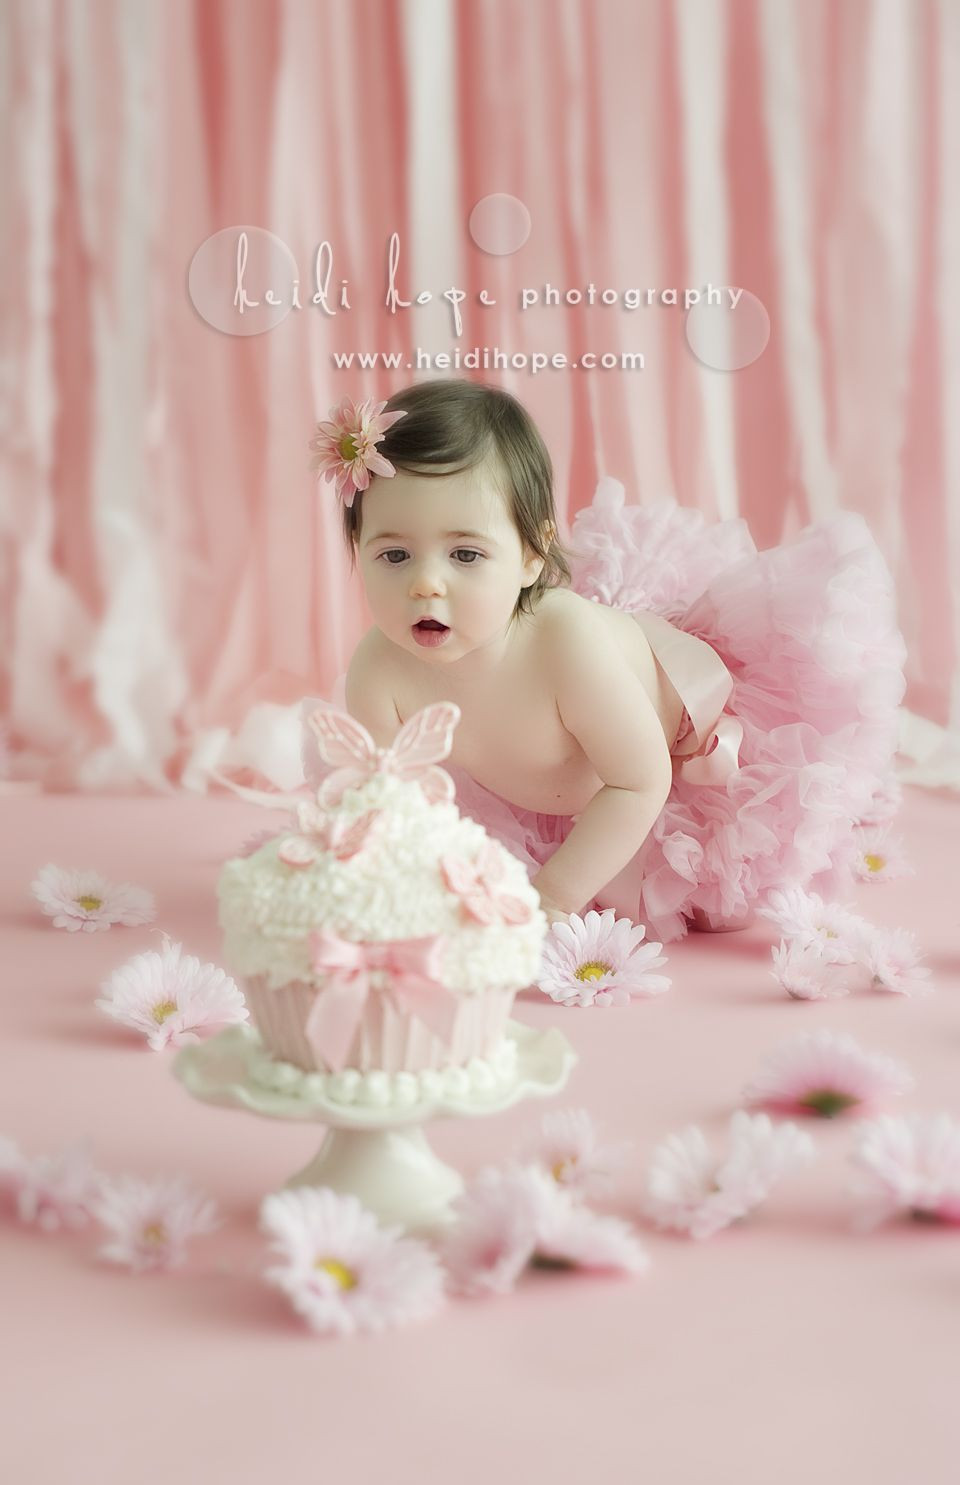 Best ideas about Birthday Cake Smash . Save or Pin 1st birthday cake smash Now.